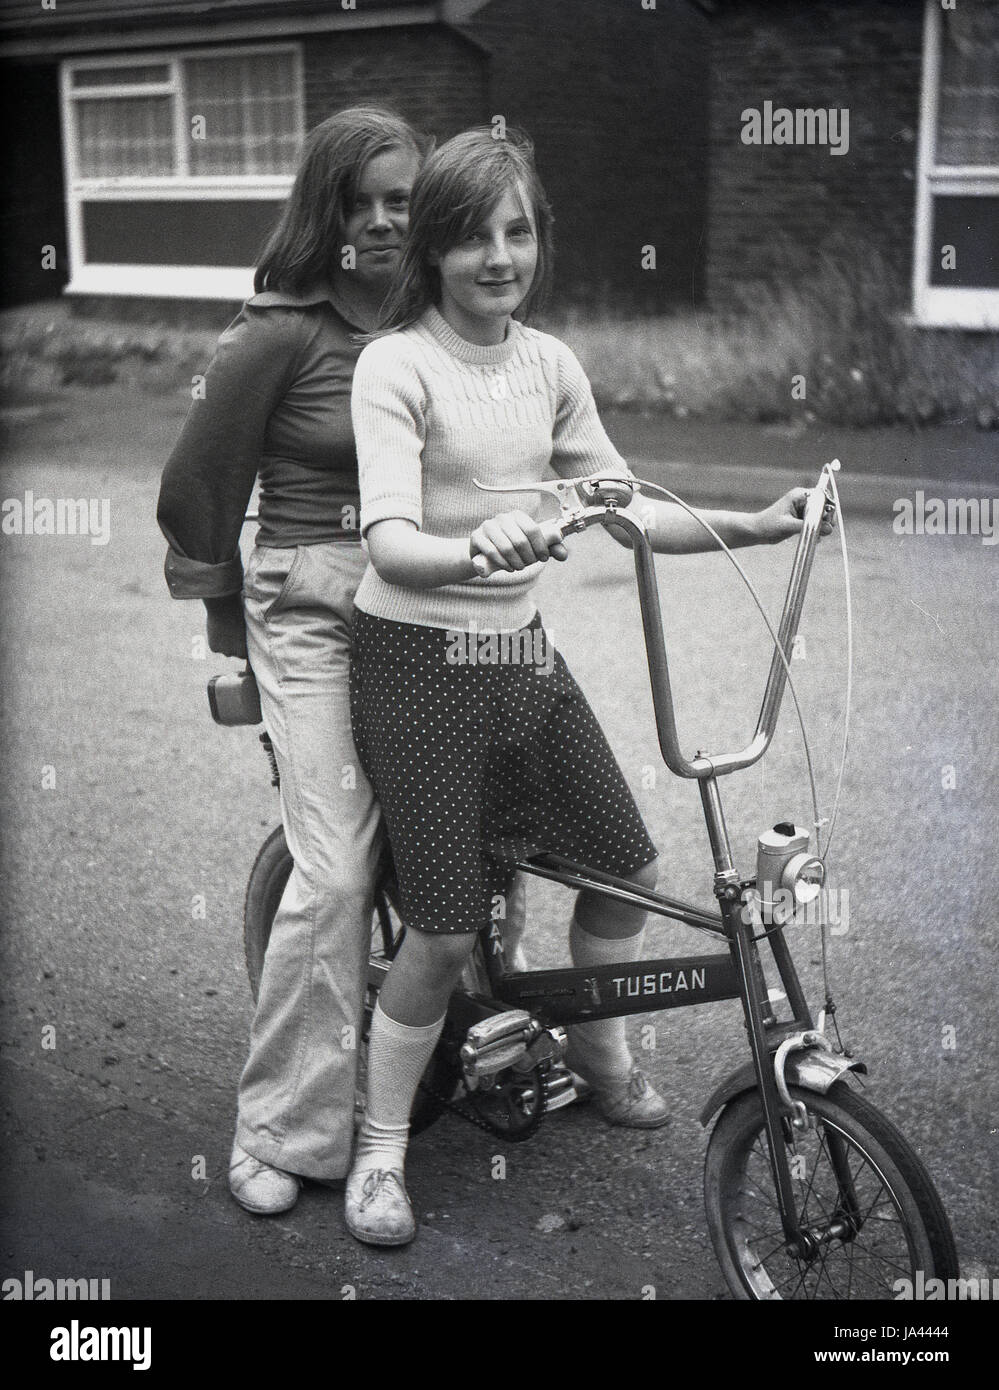 1970s, historical, two young girls stting outside on a Tuscan bike, a chopper type bicycle with high handlebars - Stock Image